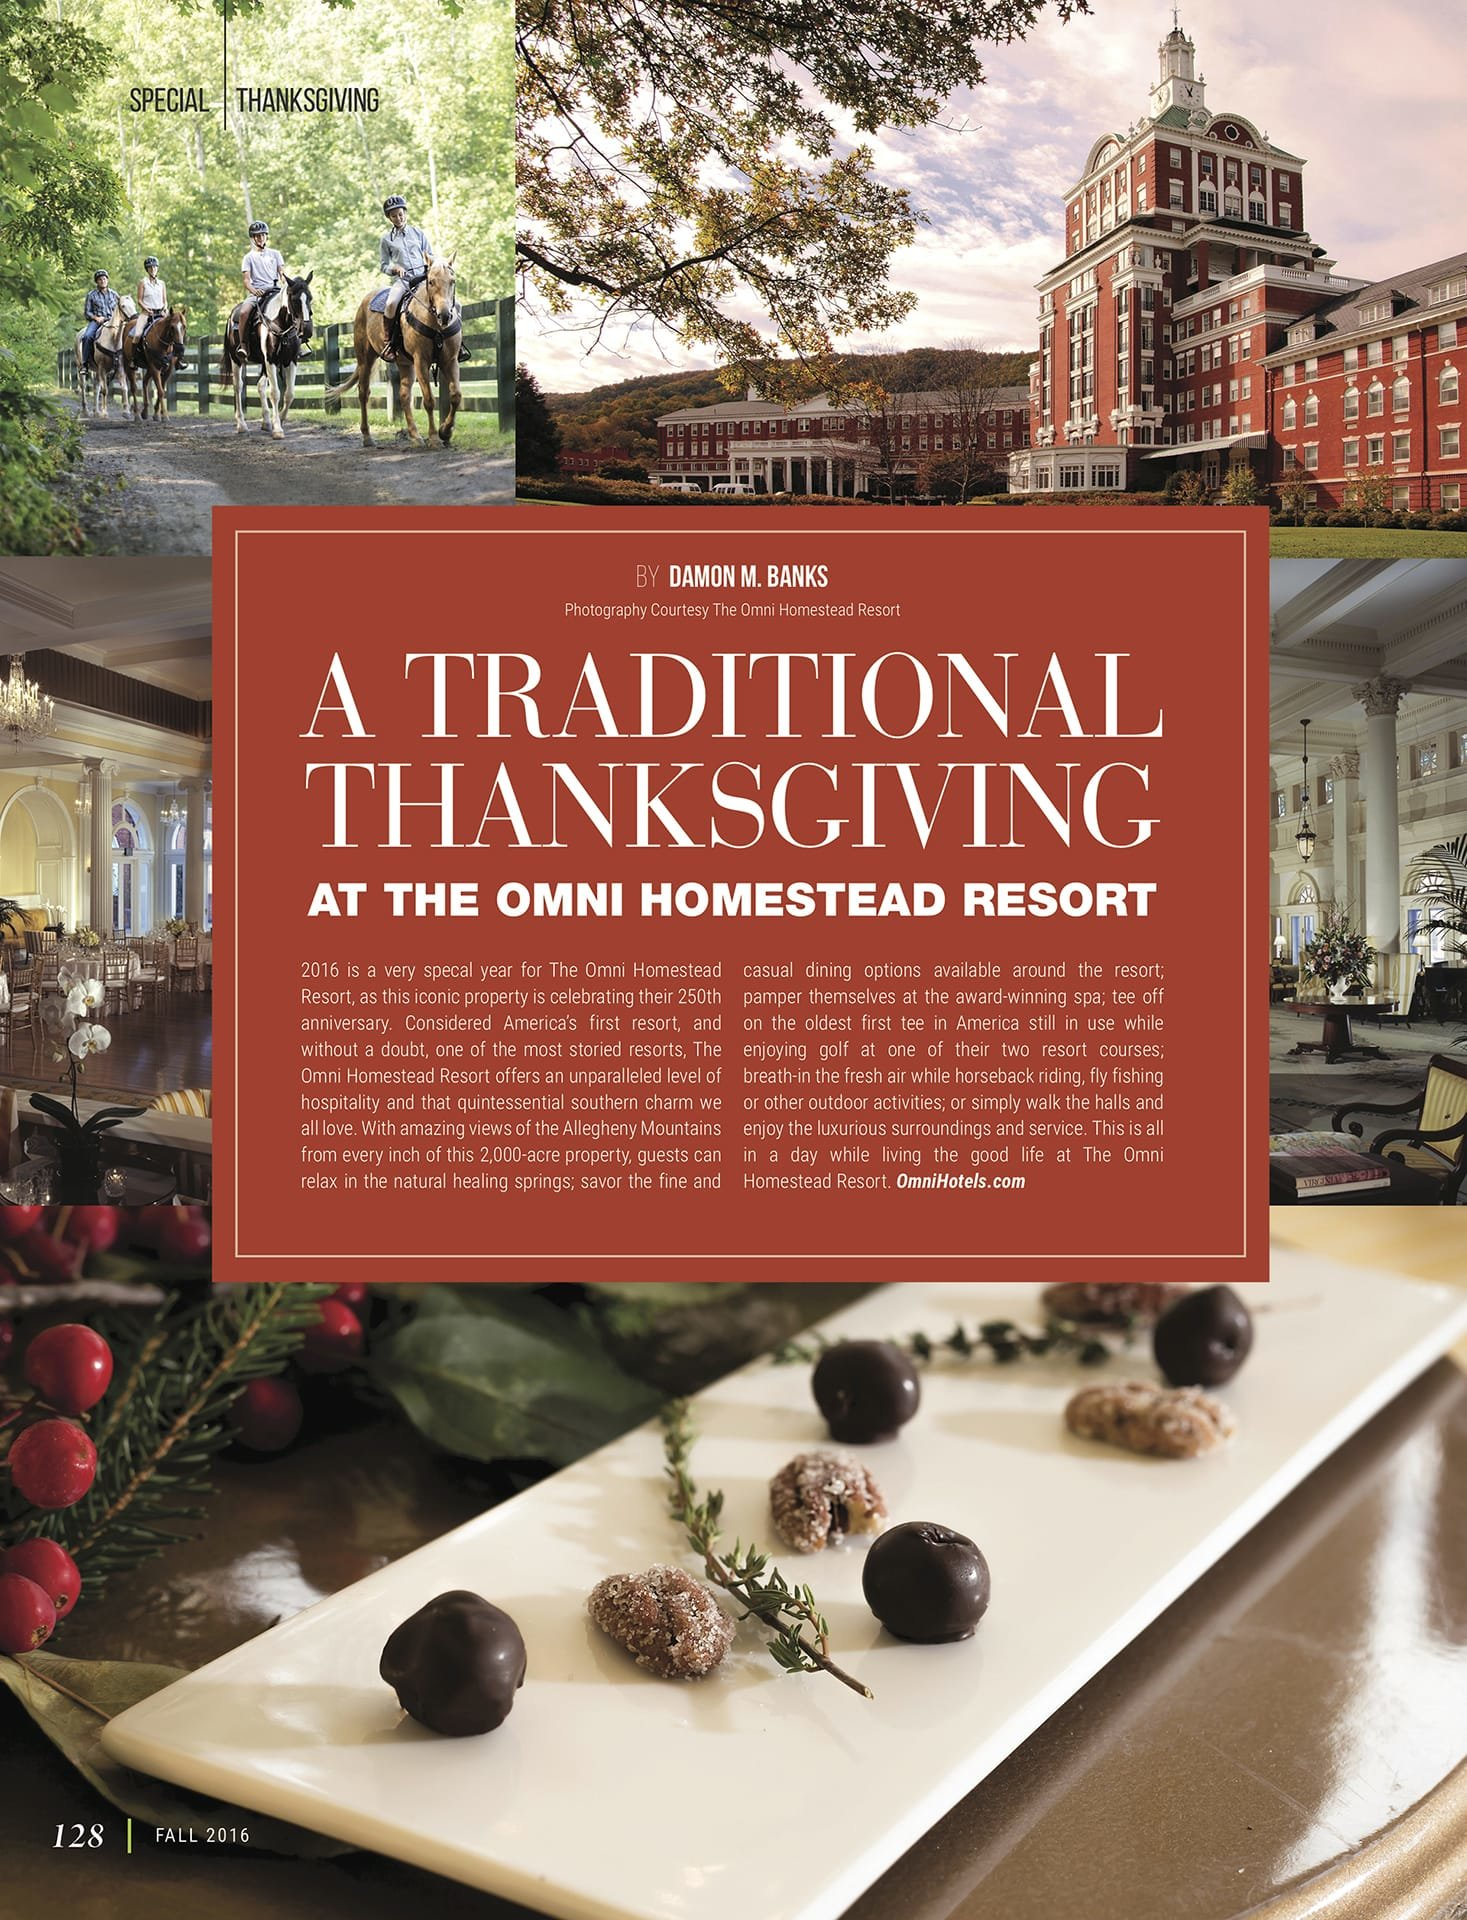 A Traditional Thanksgiving at The Omni Homestead Resort